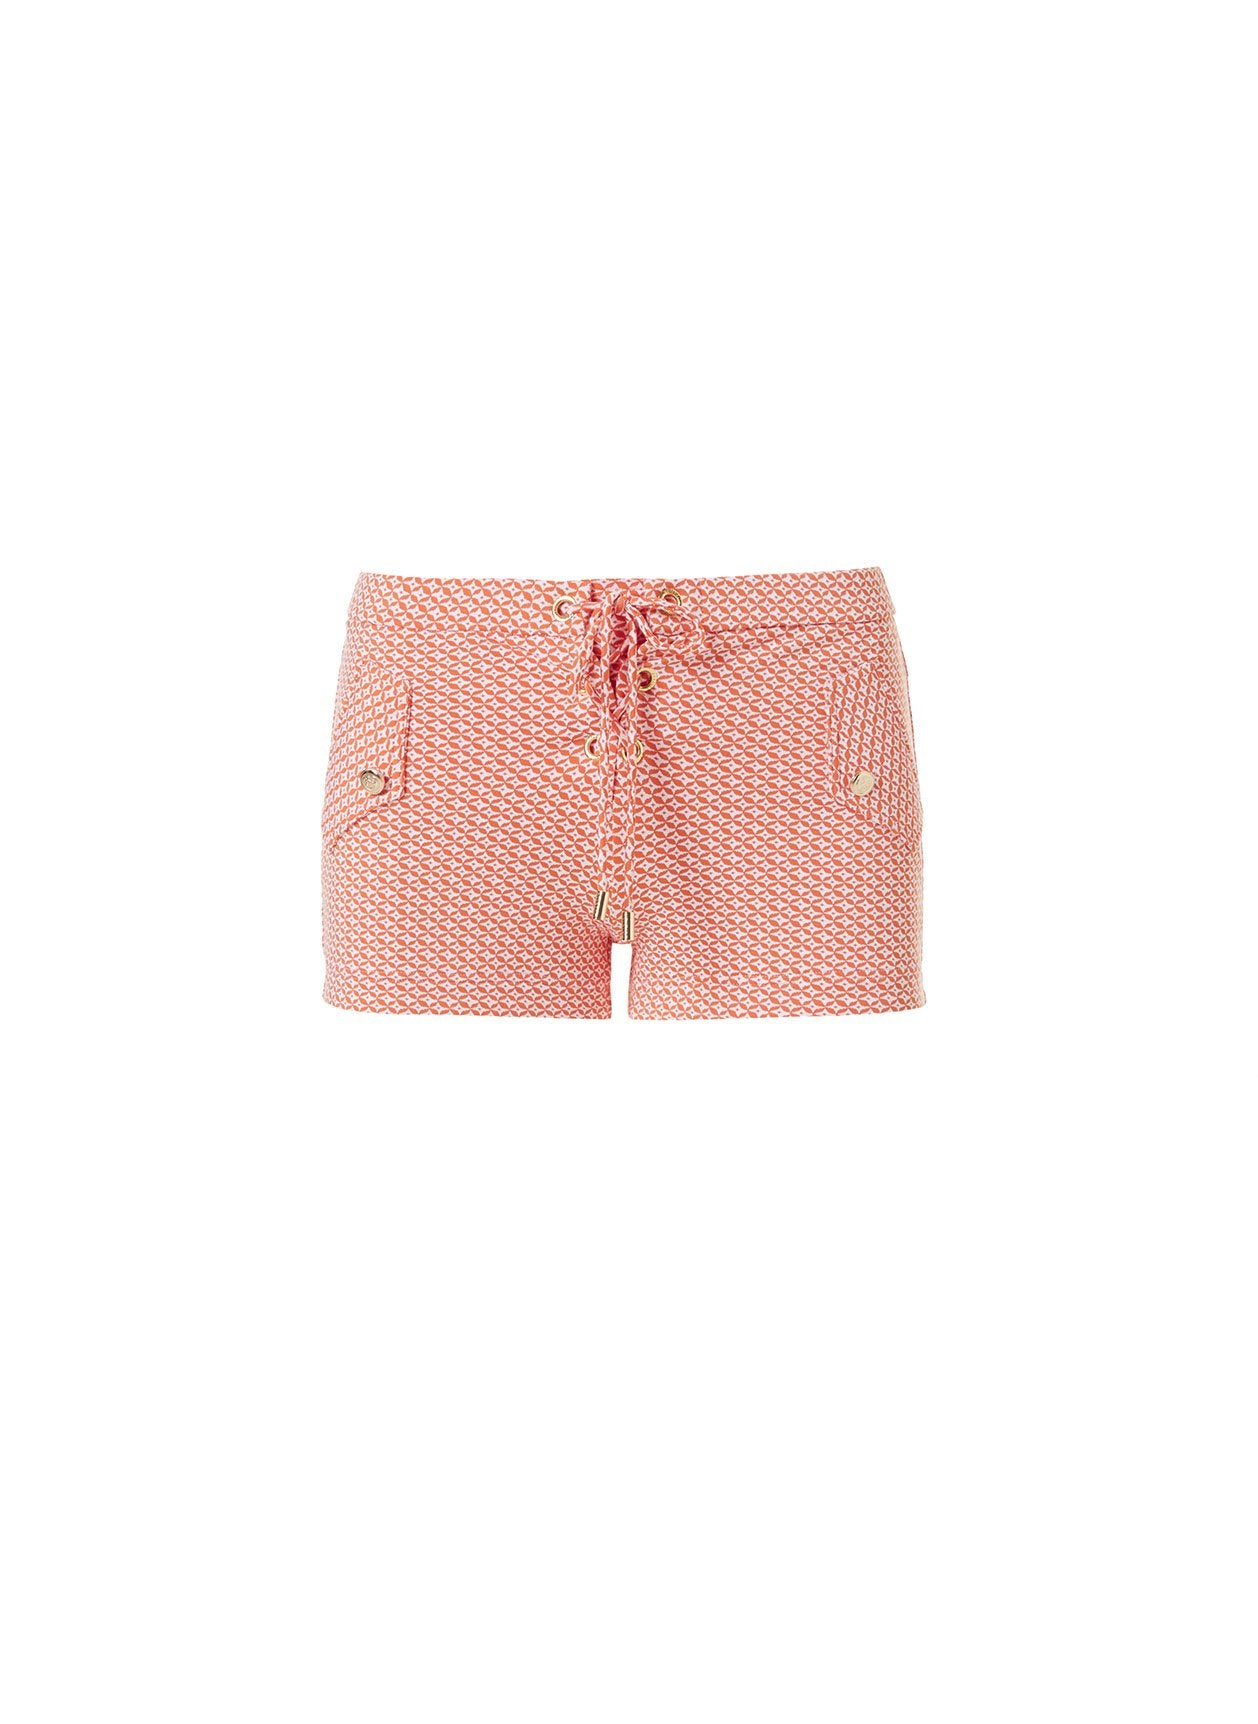 sophia mosaic orange shorts